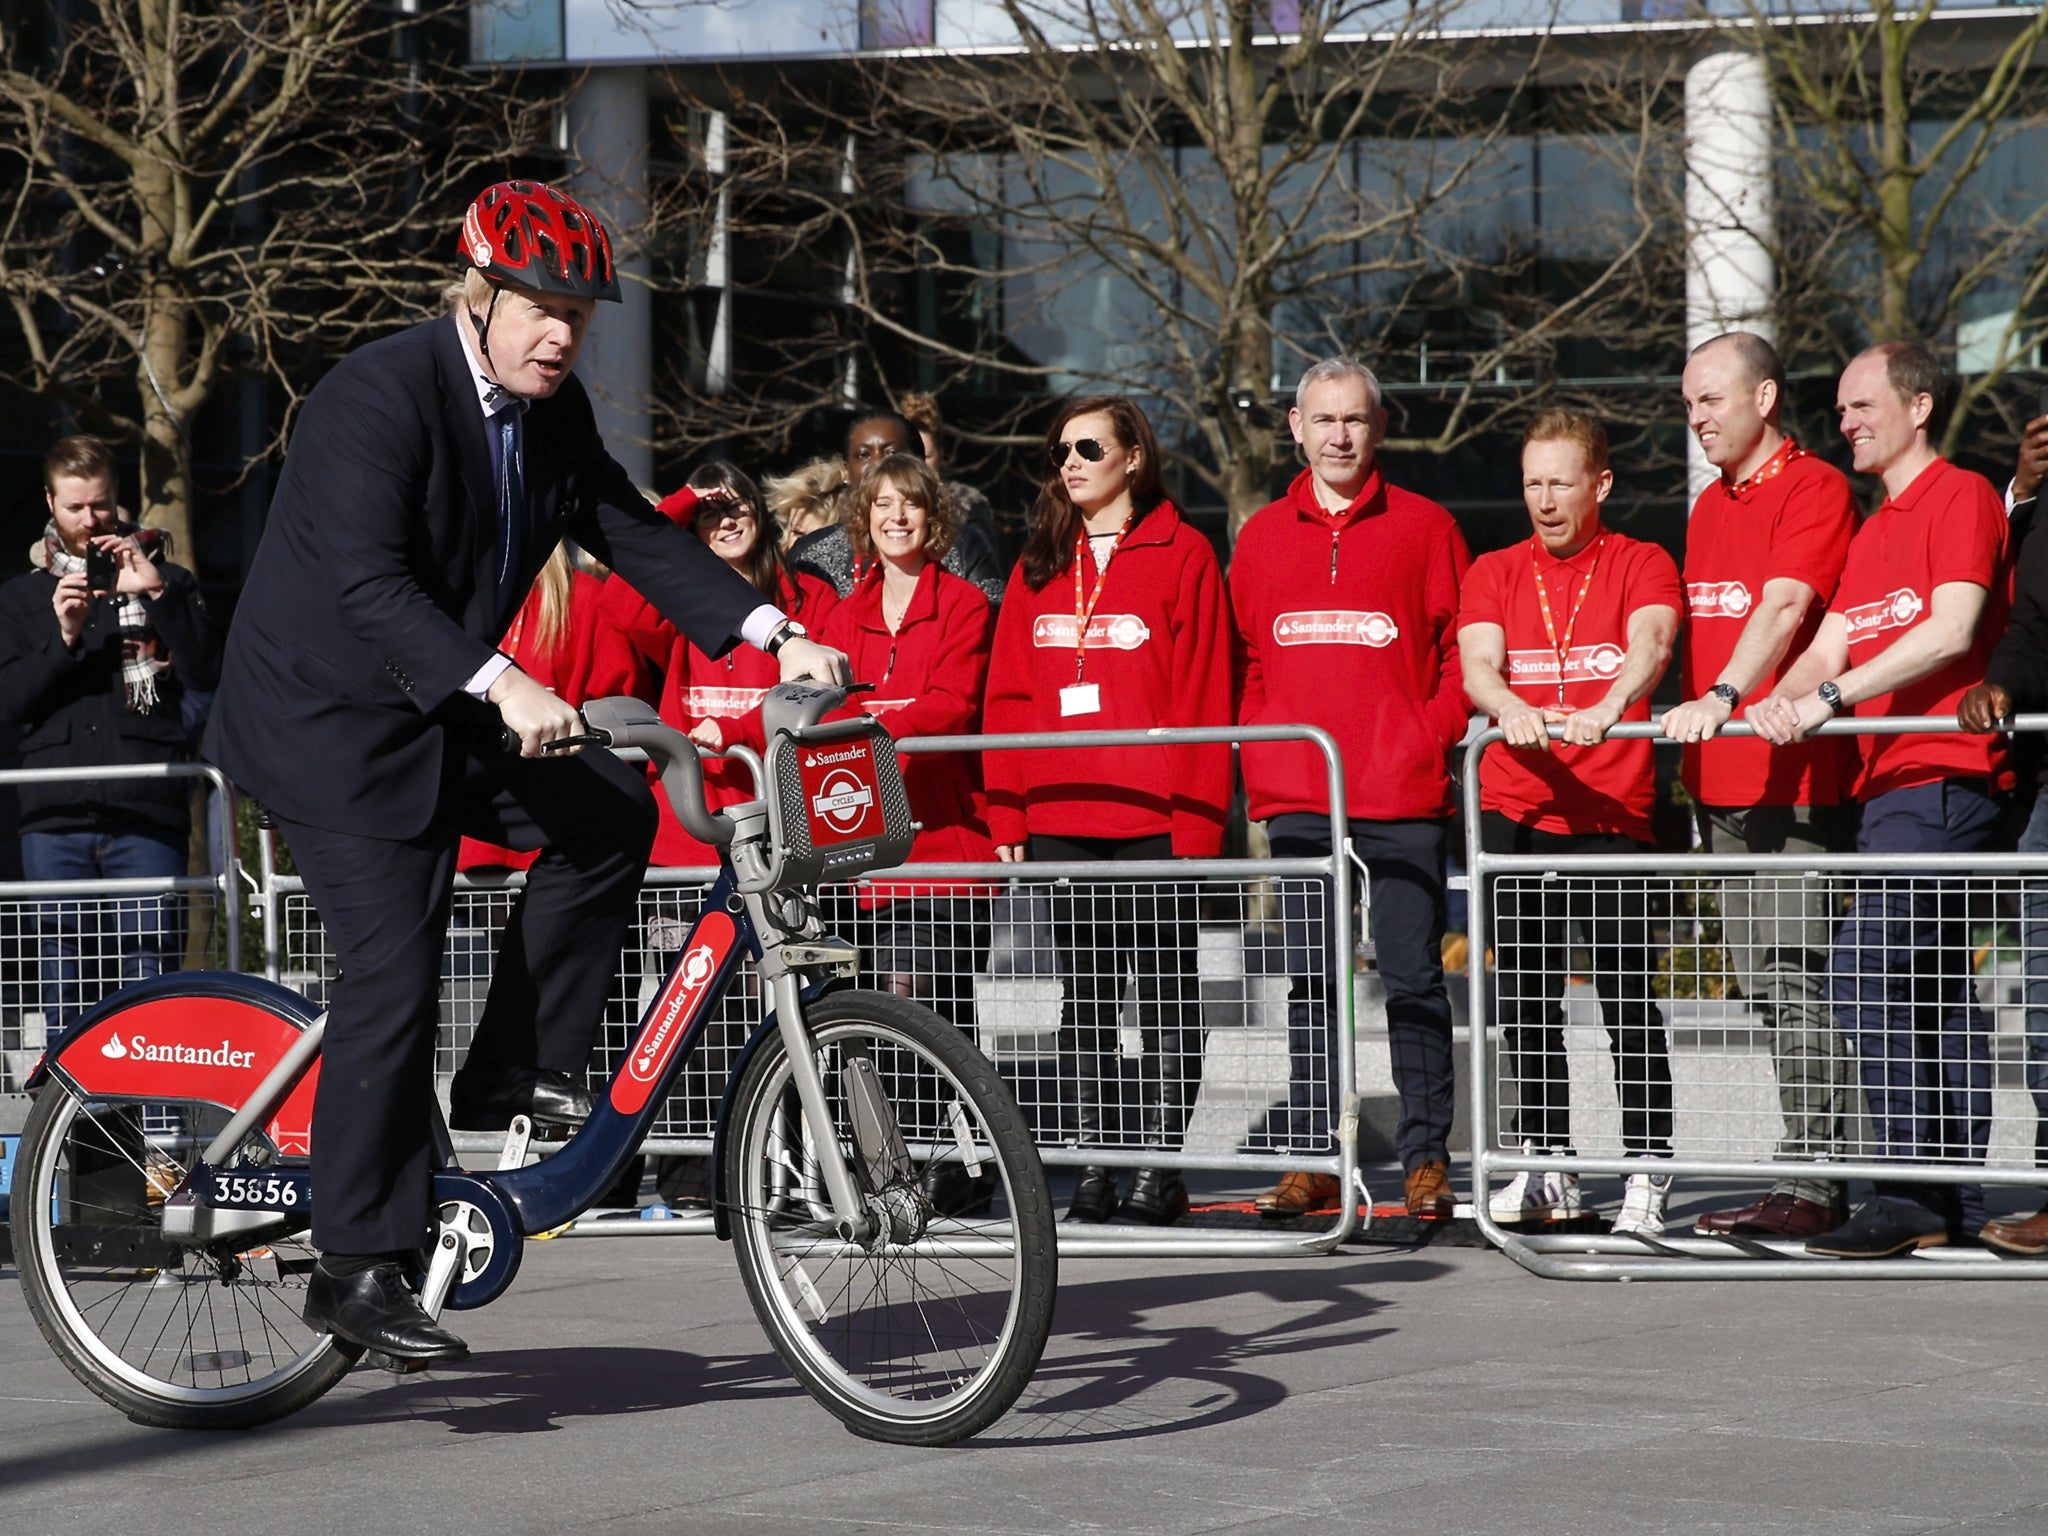 London Tube strike today: How to find your nearest Boris Bike station | The Independentindependent_brand_ident_LOGOUntitled